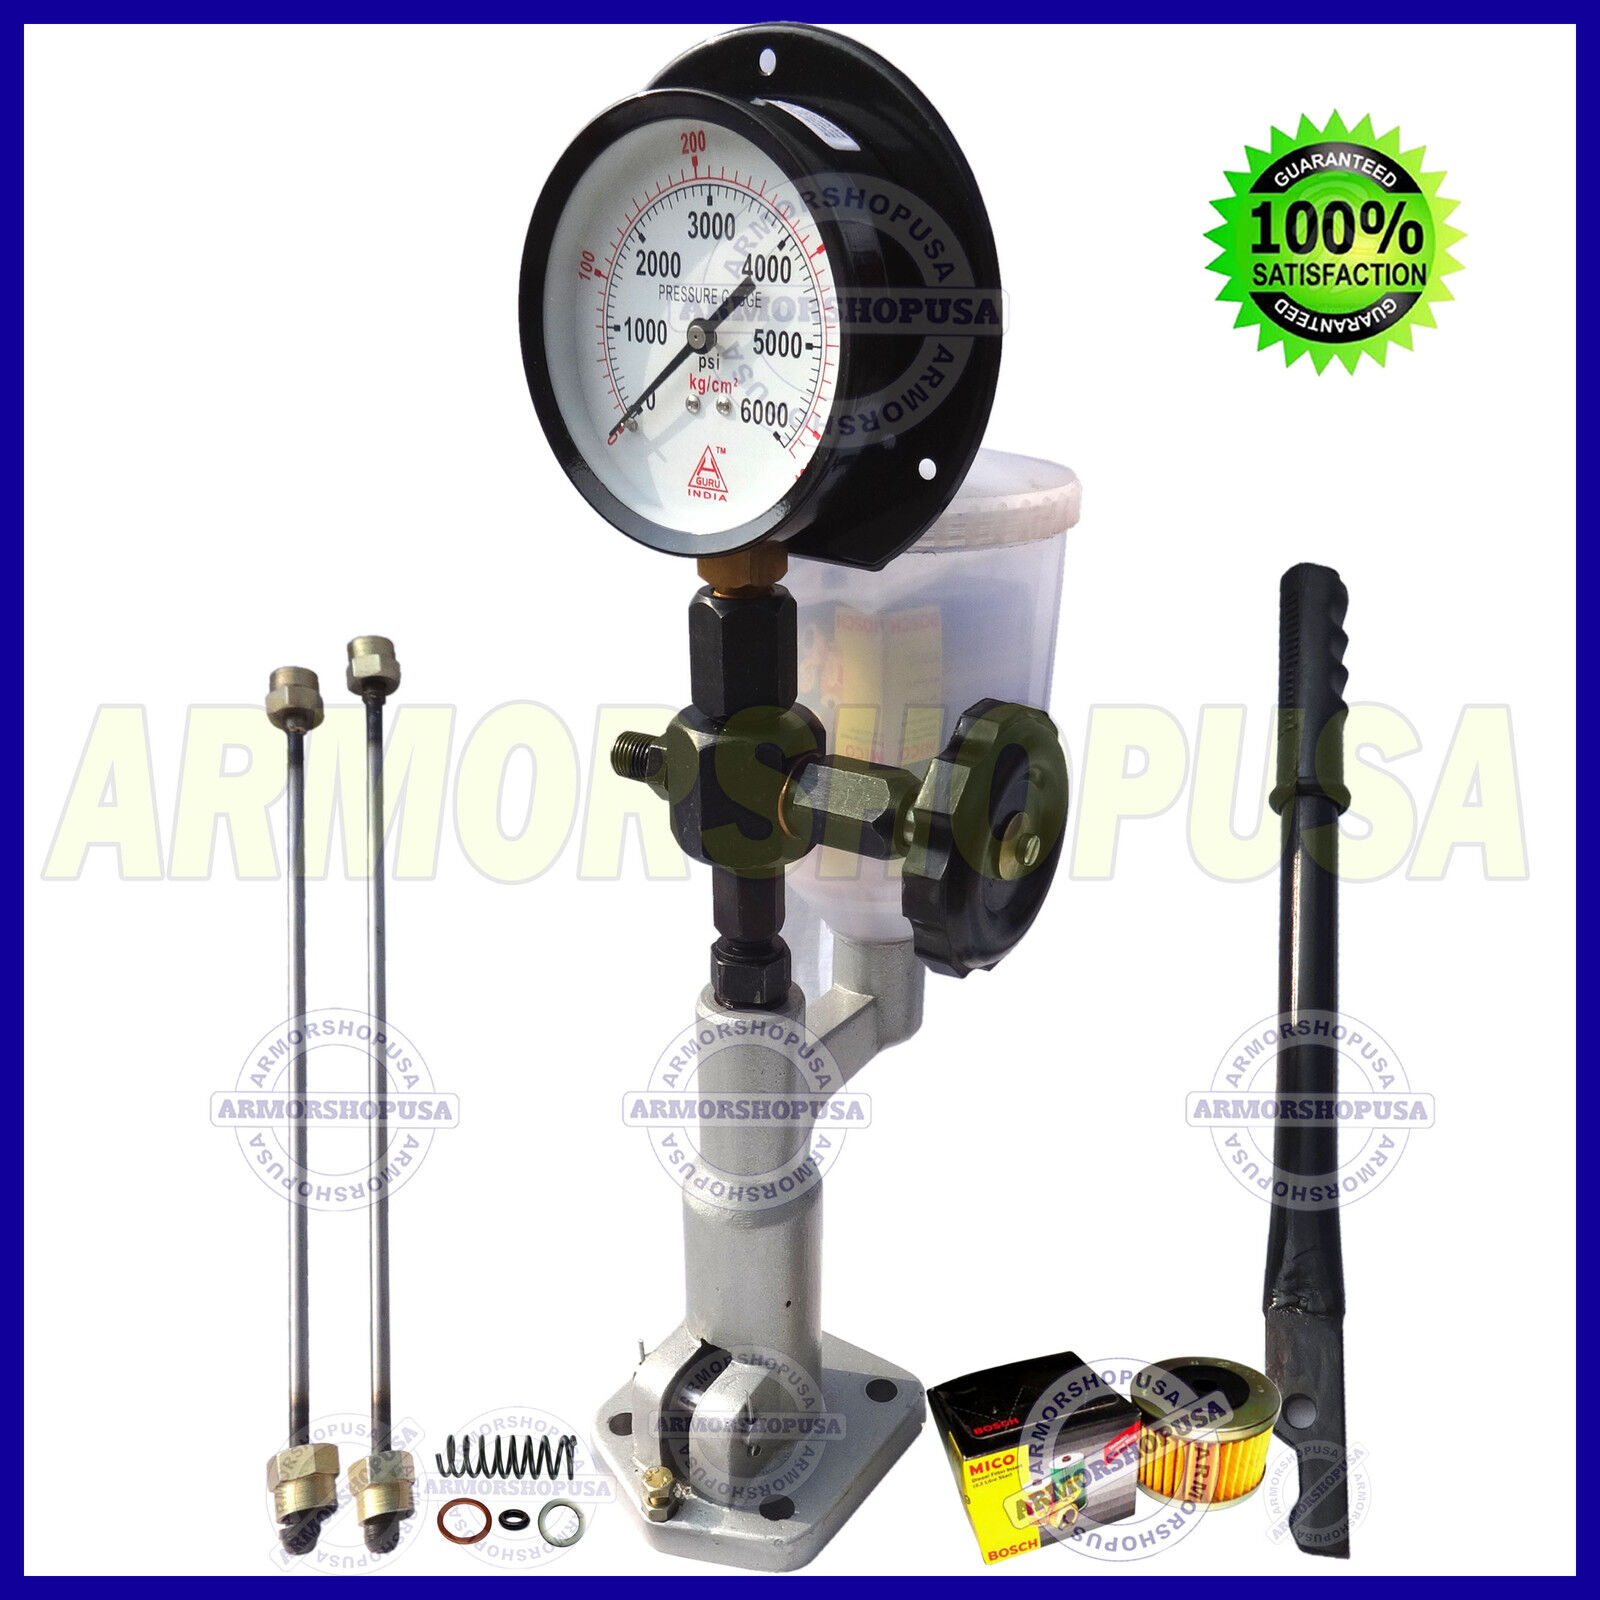 Fuel Injector Pop Tester Diesel Test Wire Diagrams Tach Wiring Http Wwwbenzworldorg Forums W123ecedcdtd Nozzle Pressure Dual Scale Bar